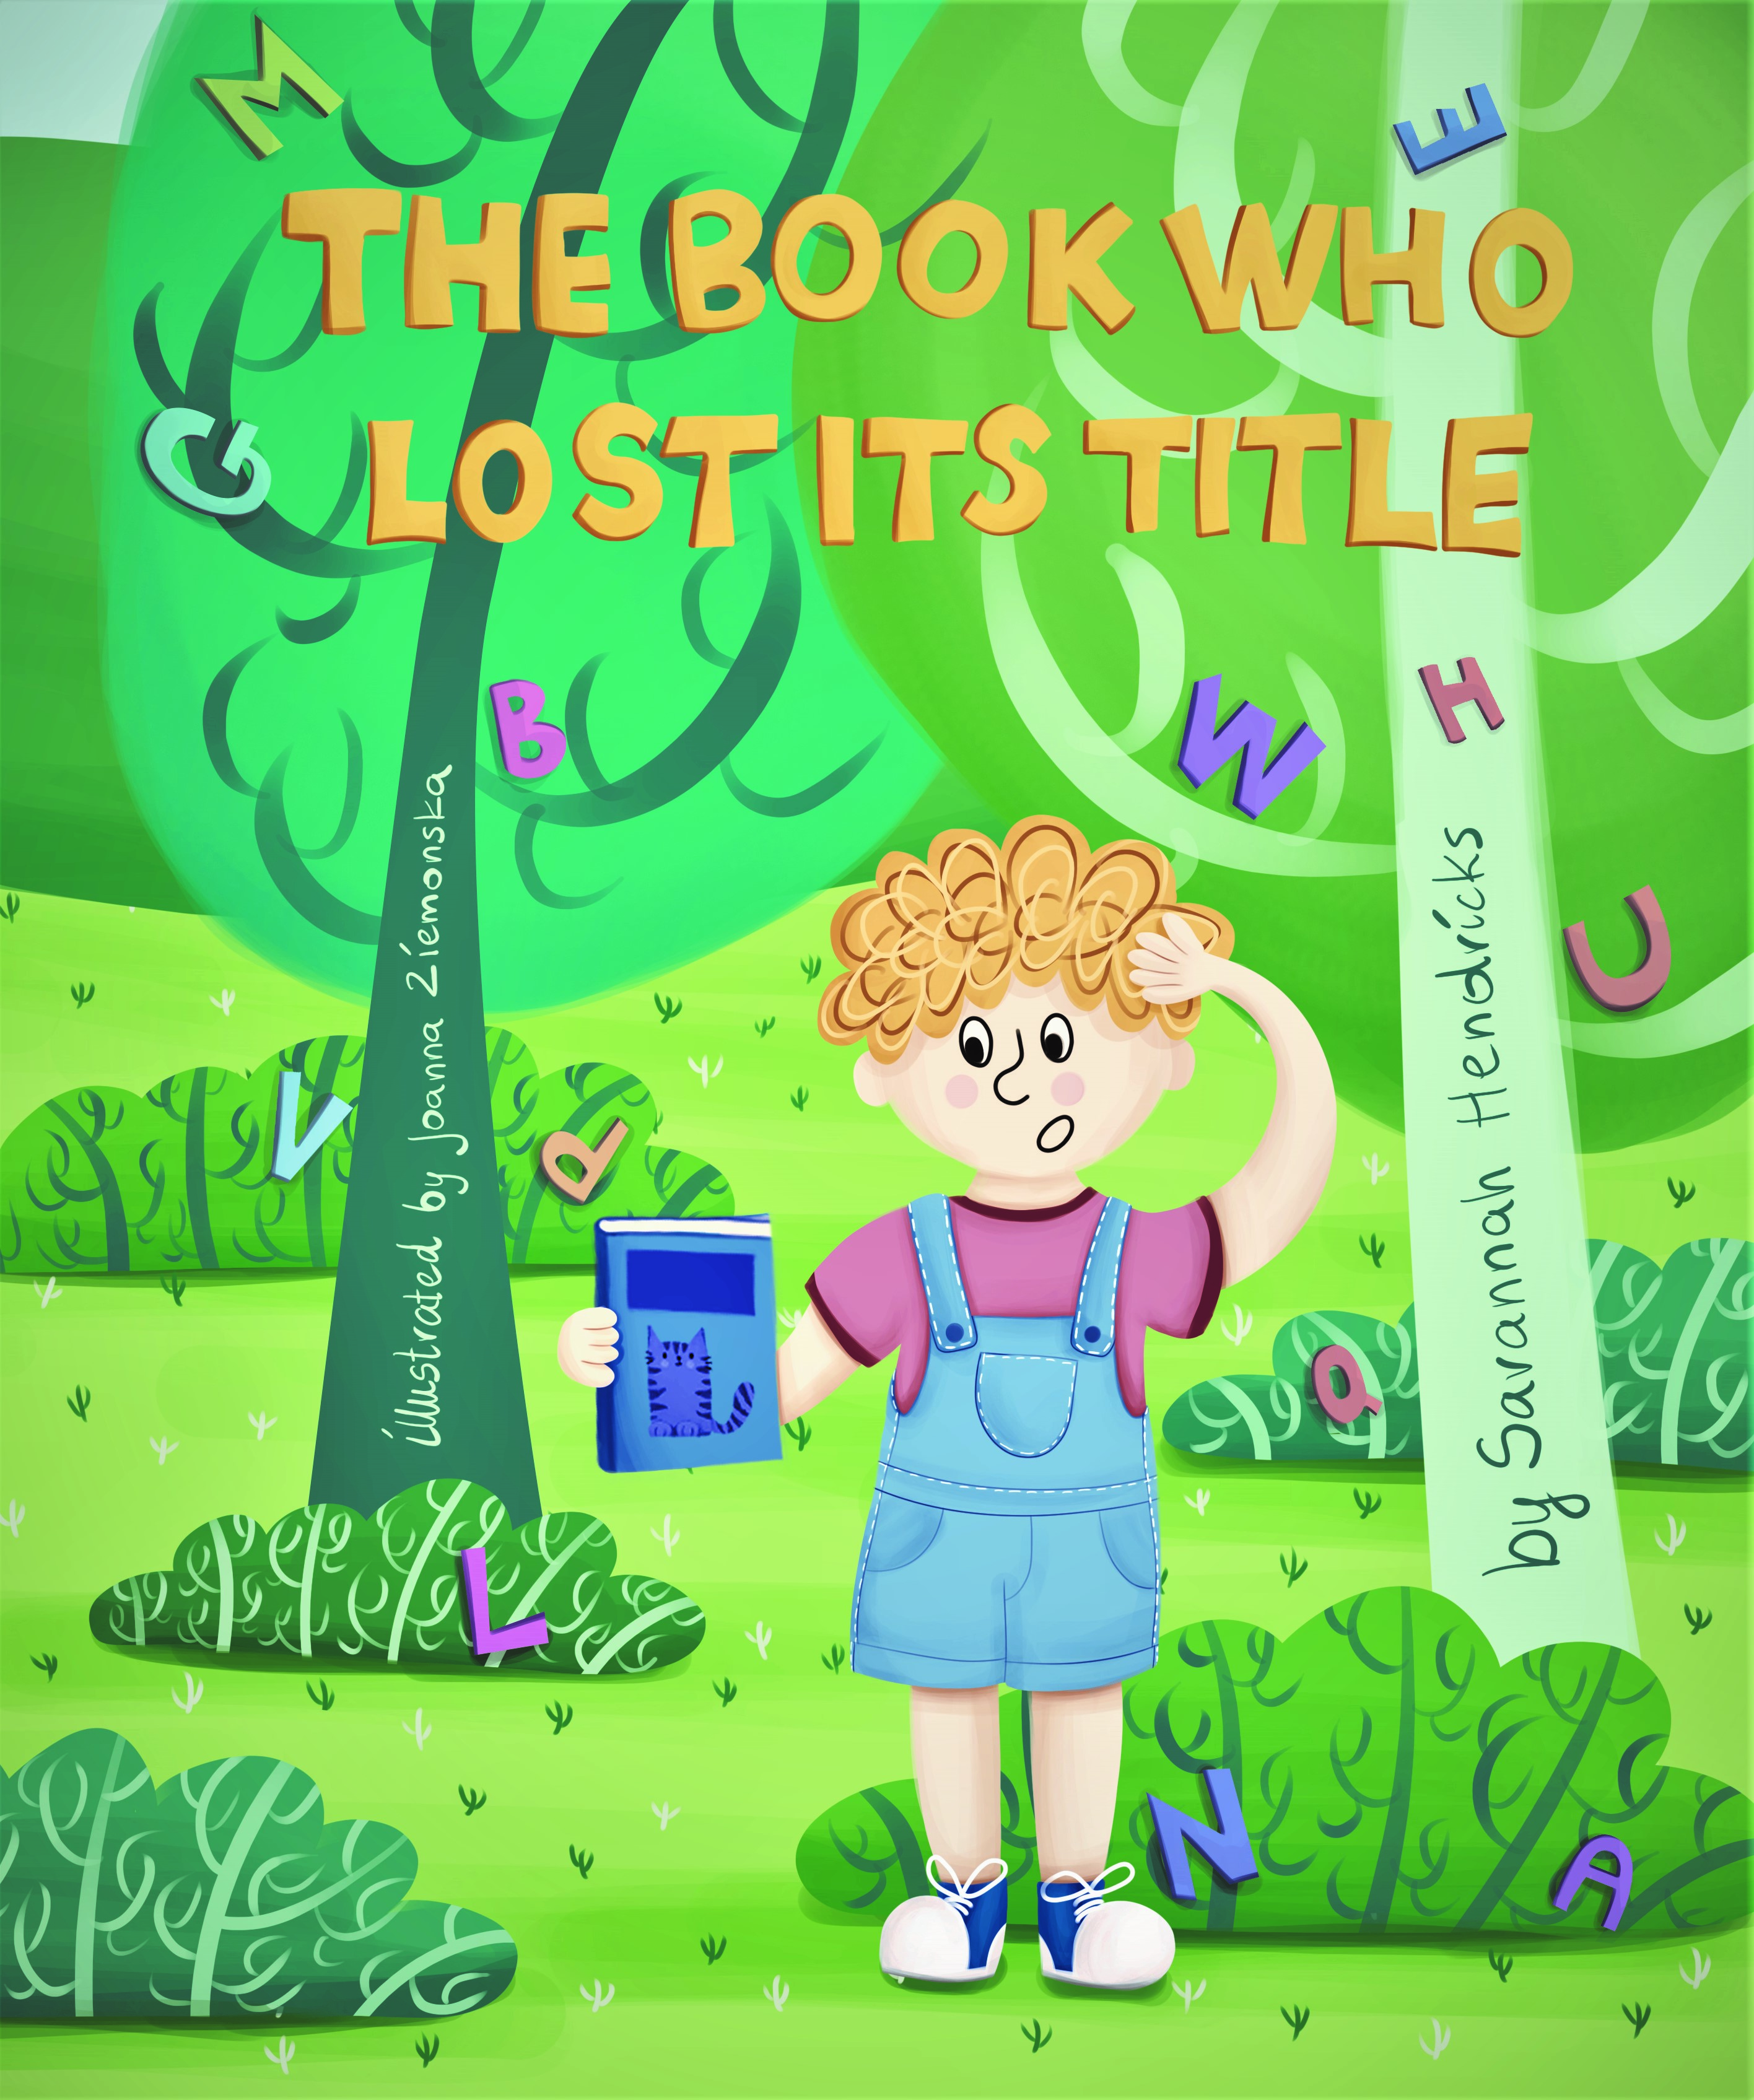 The Book Who Lost its Title Author: Savannah Hendricks Illustrator: Joanna Ziemonska Publisher Name: Big Belly Book Co. Date of Publication:October 1st